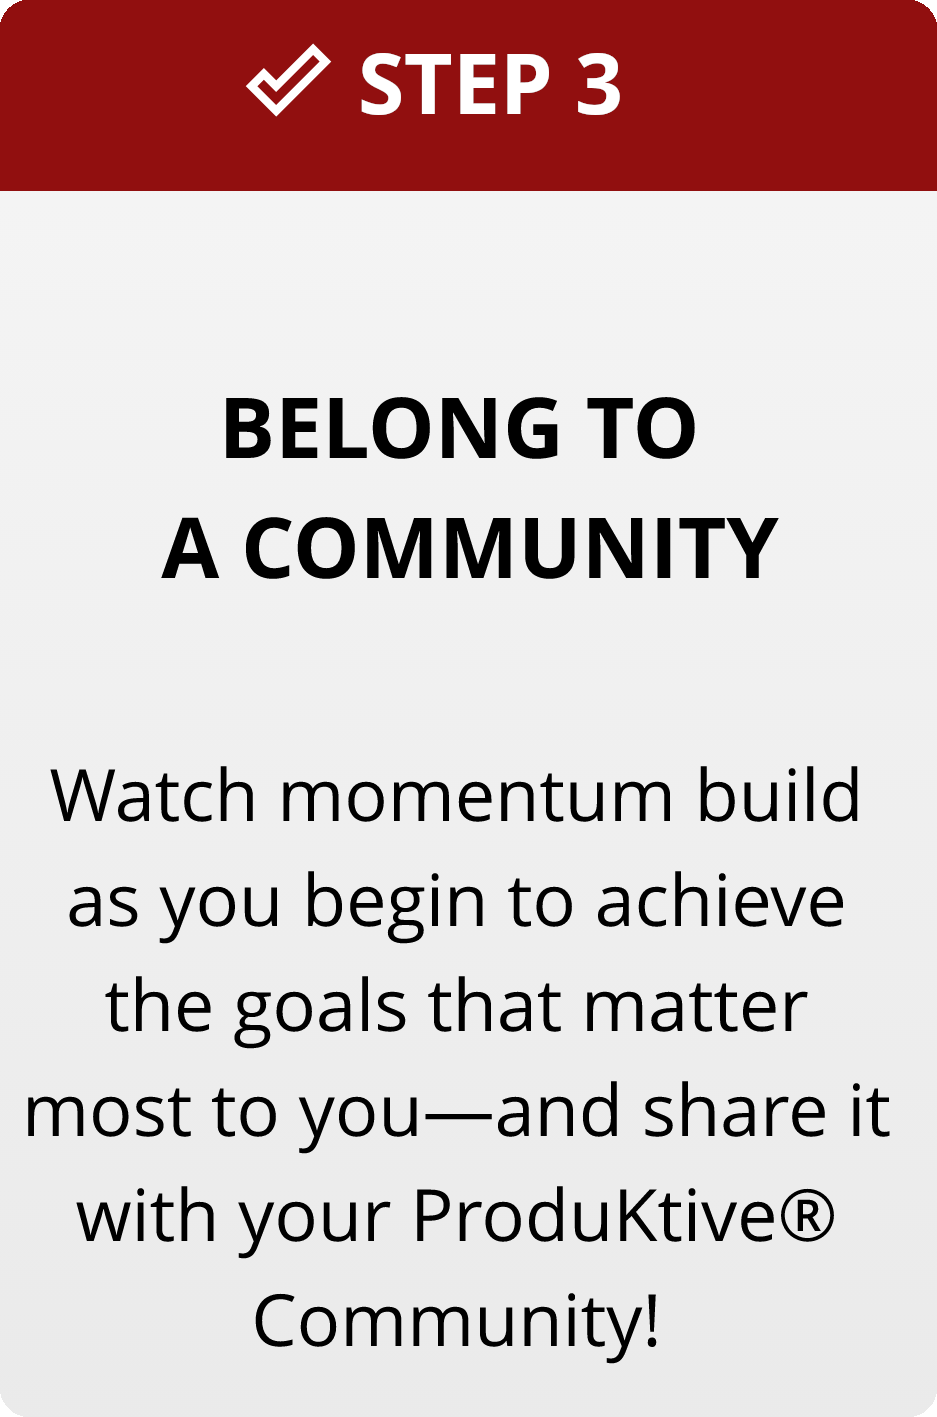 Step 3: Belong to a community. Watch momentum build as you begin to achieve the goals that matter most to you - and share it with your ProduKtive® Community.